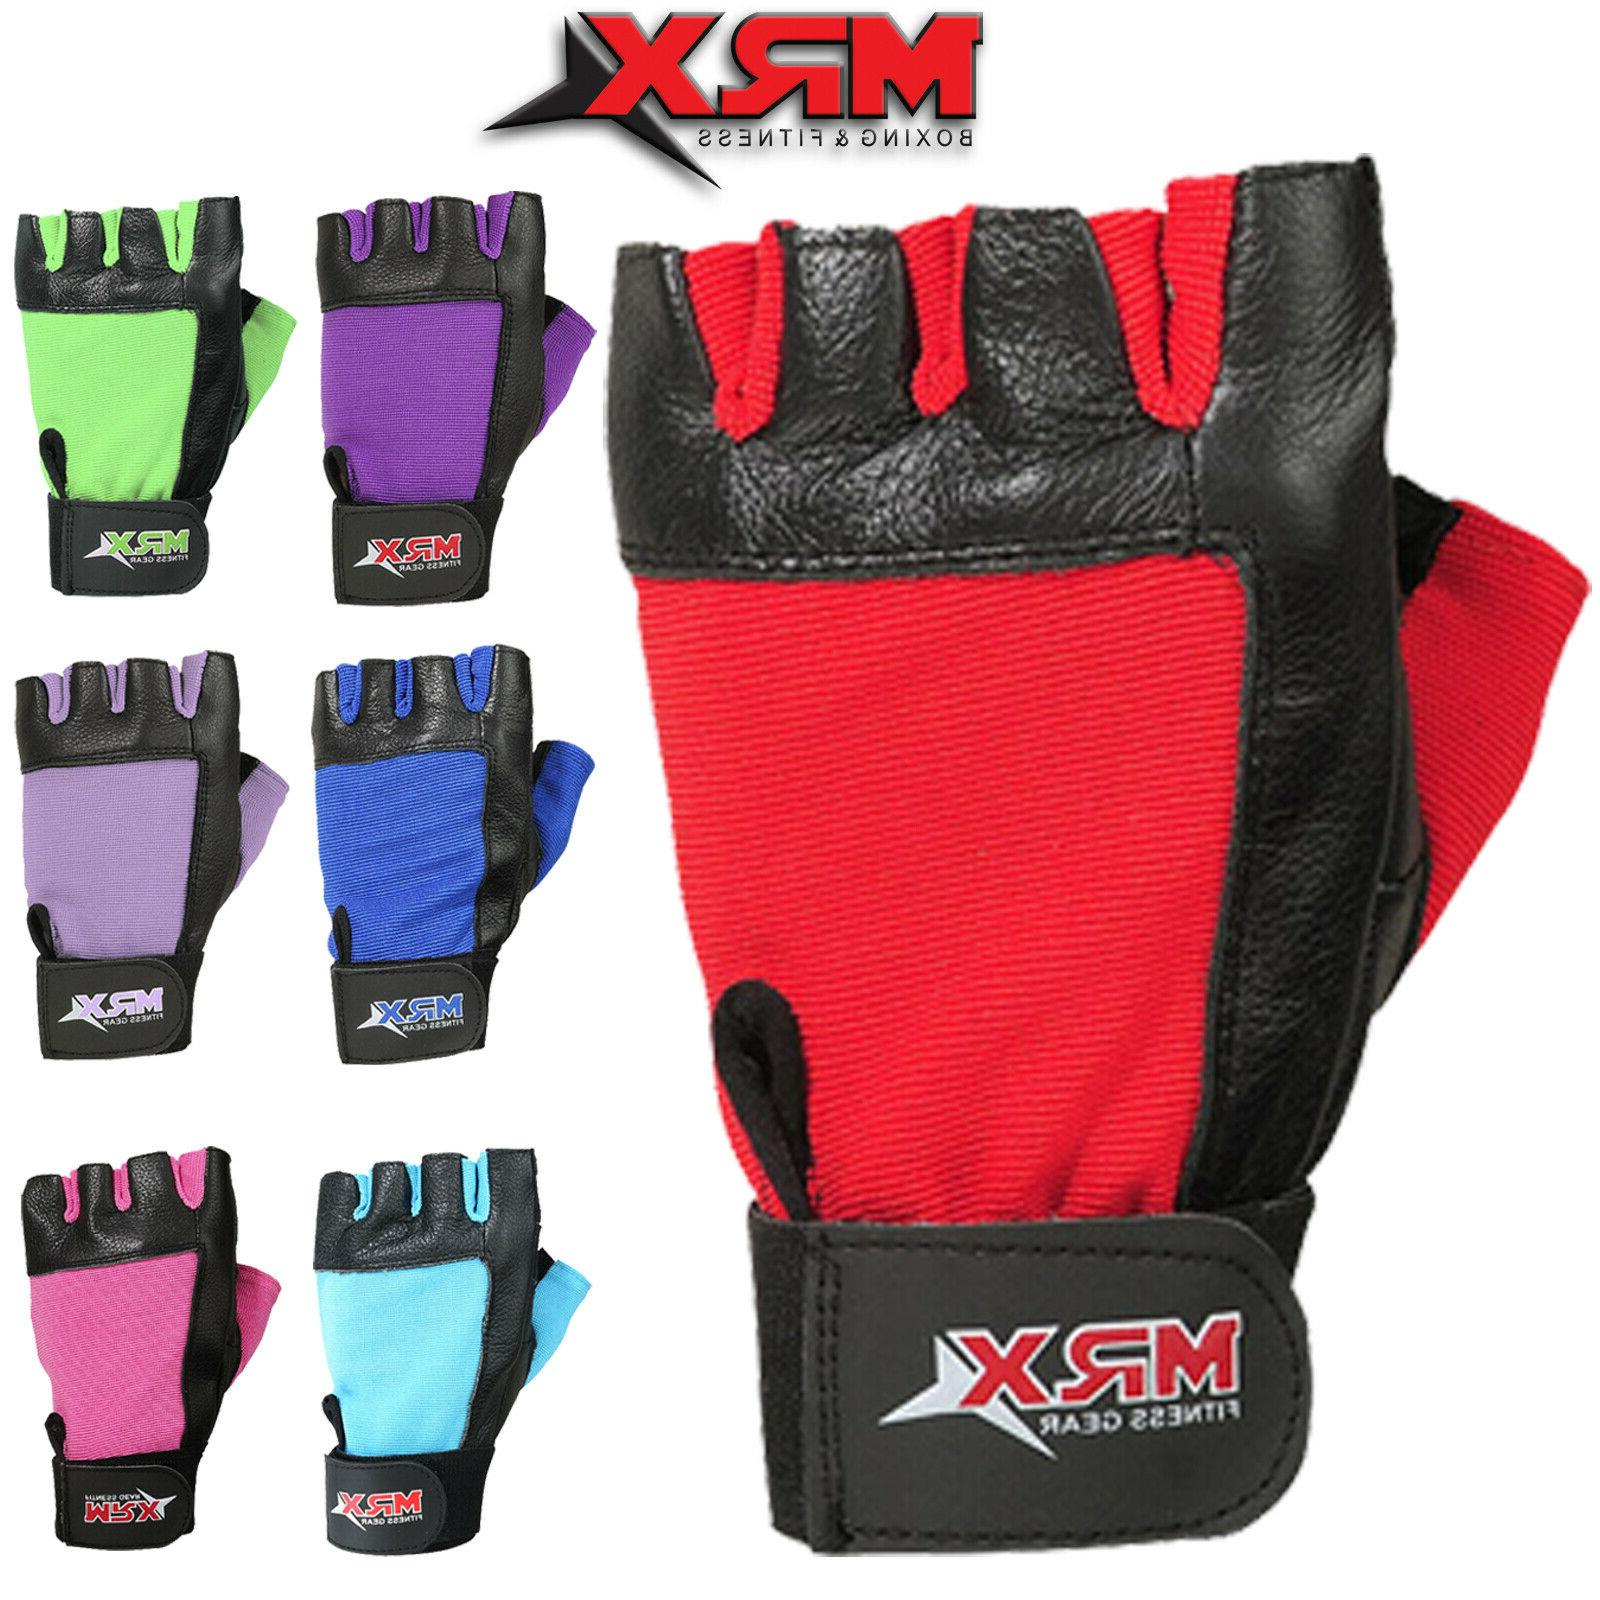 weight lifting gloves men and women fitness